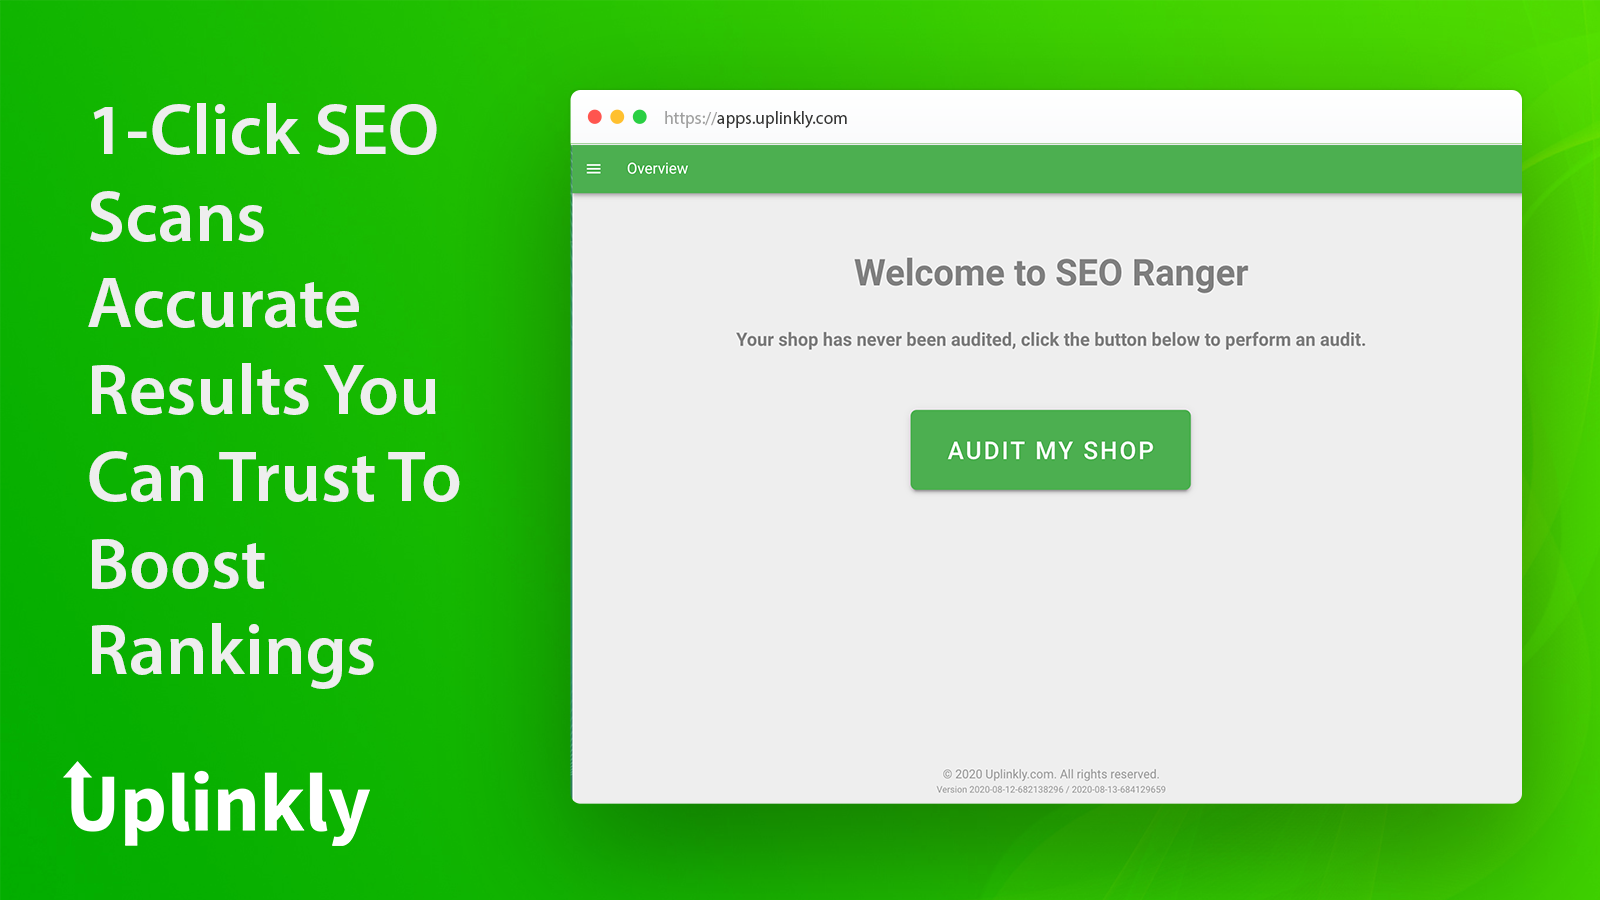 SEO Ranger Home Screen Simple 1-Click Audit Scans